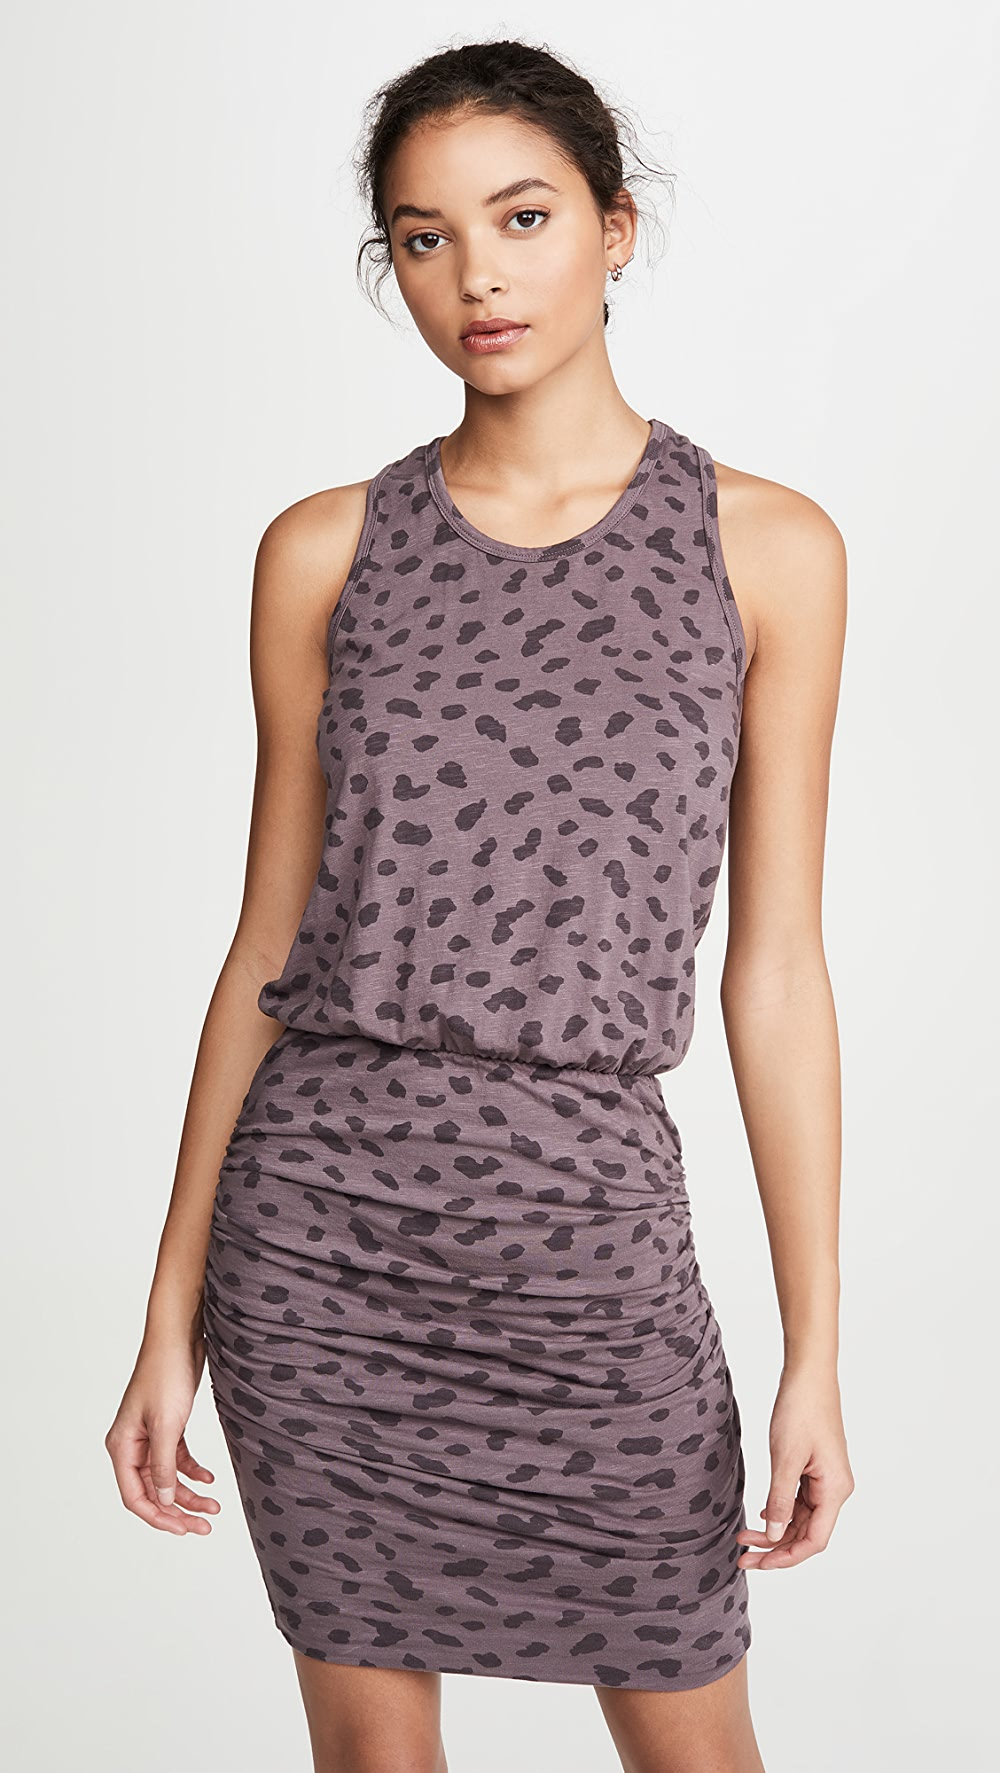 100% Quality Sundry - Tank Dress Superior (In) Quality